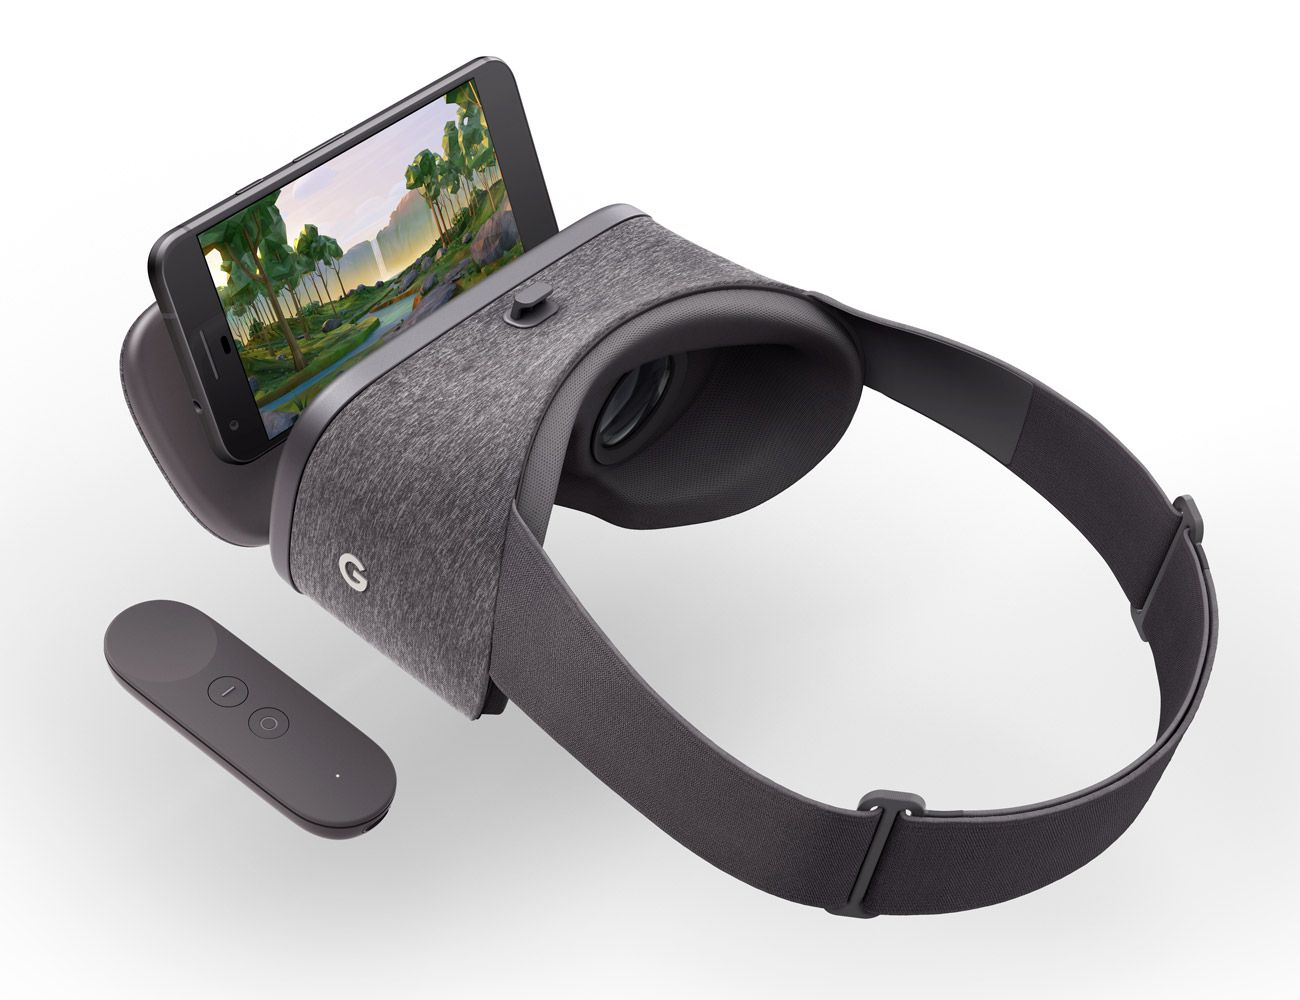 google maps tracking device with Google Daydream View Vr Headset on Details additionally Gps Track Phone in addition Gps Map also Details additionally Details.